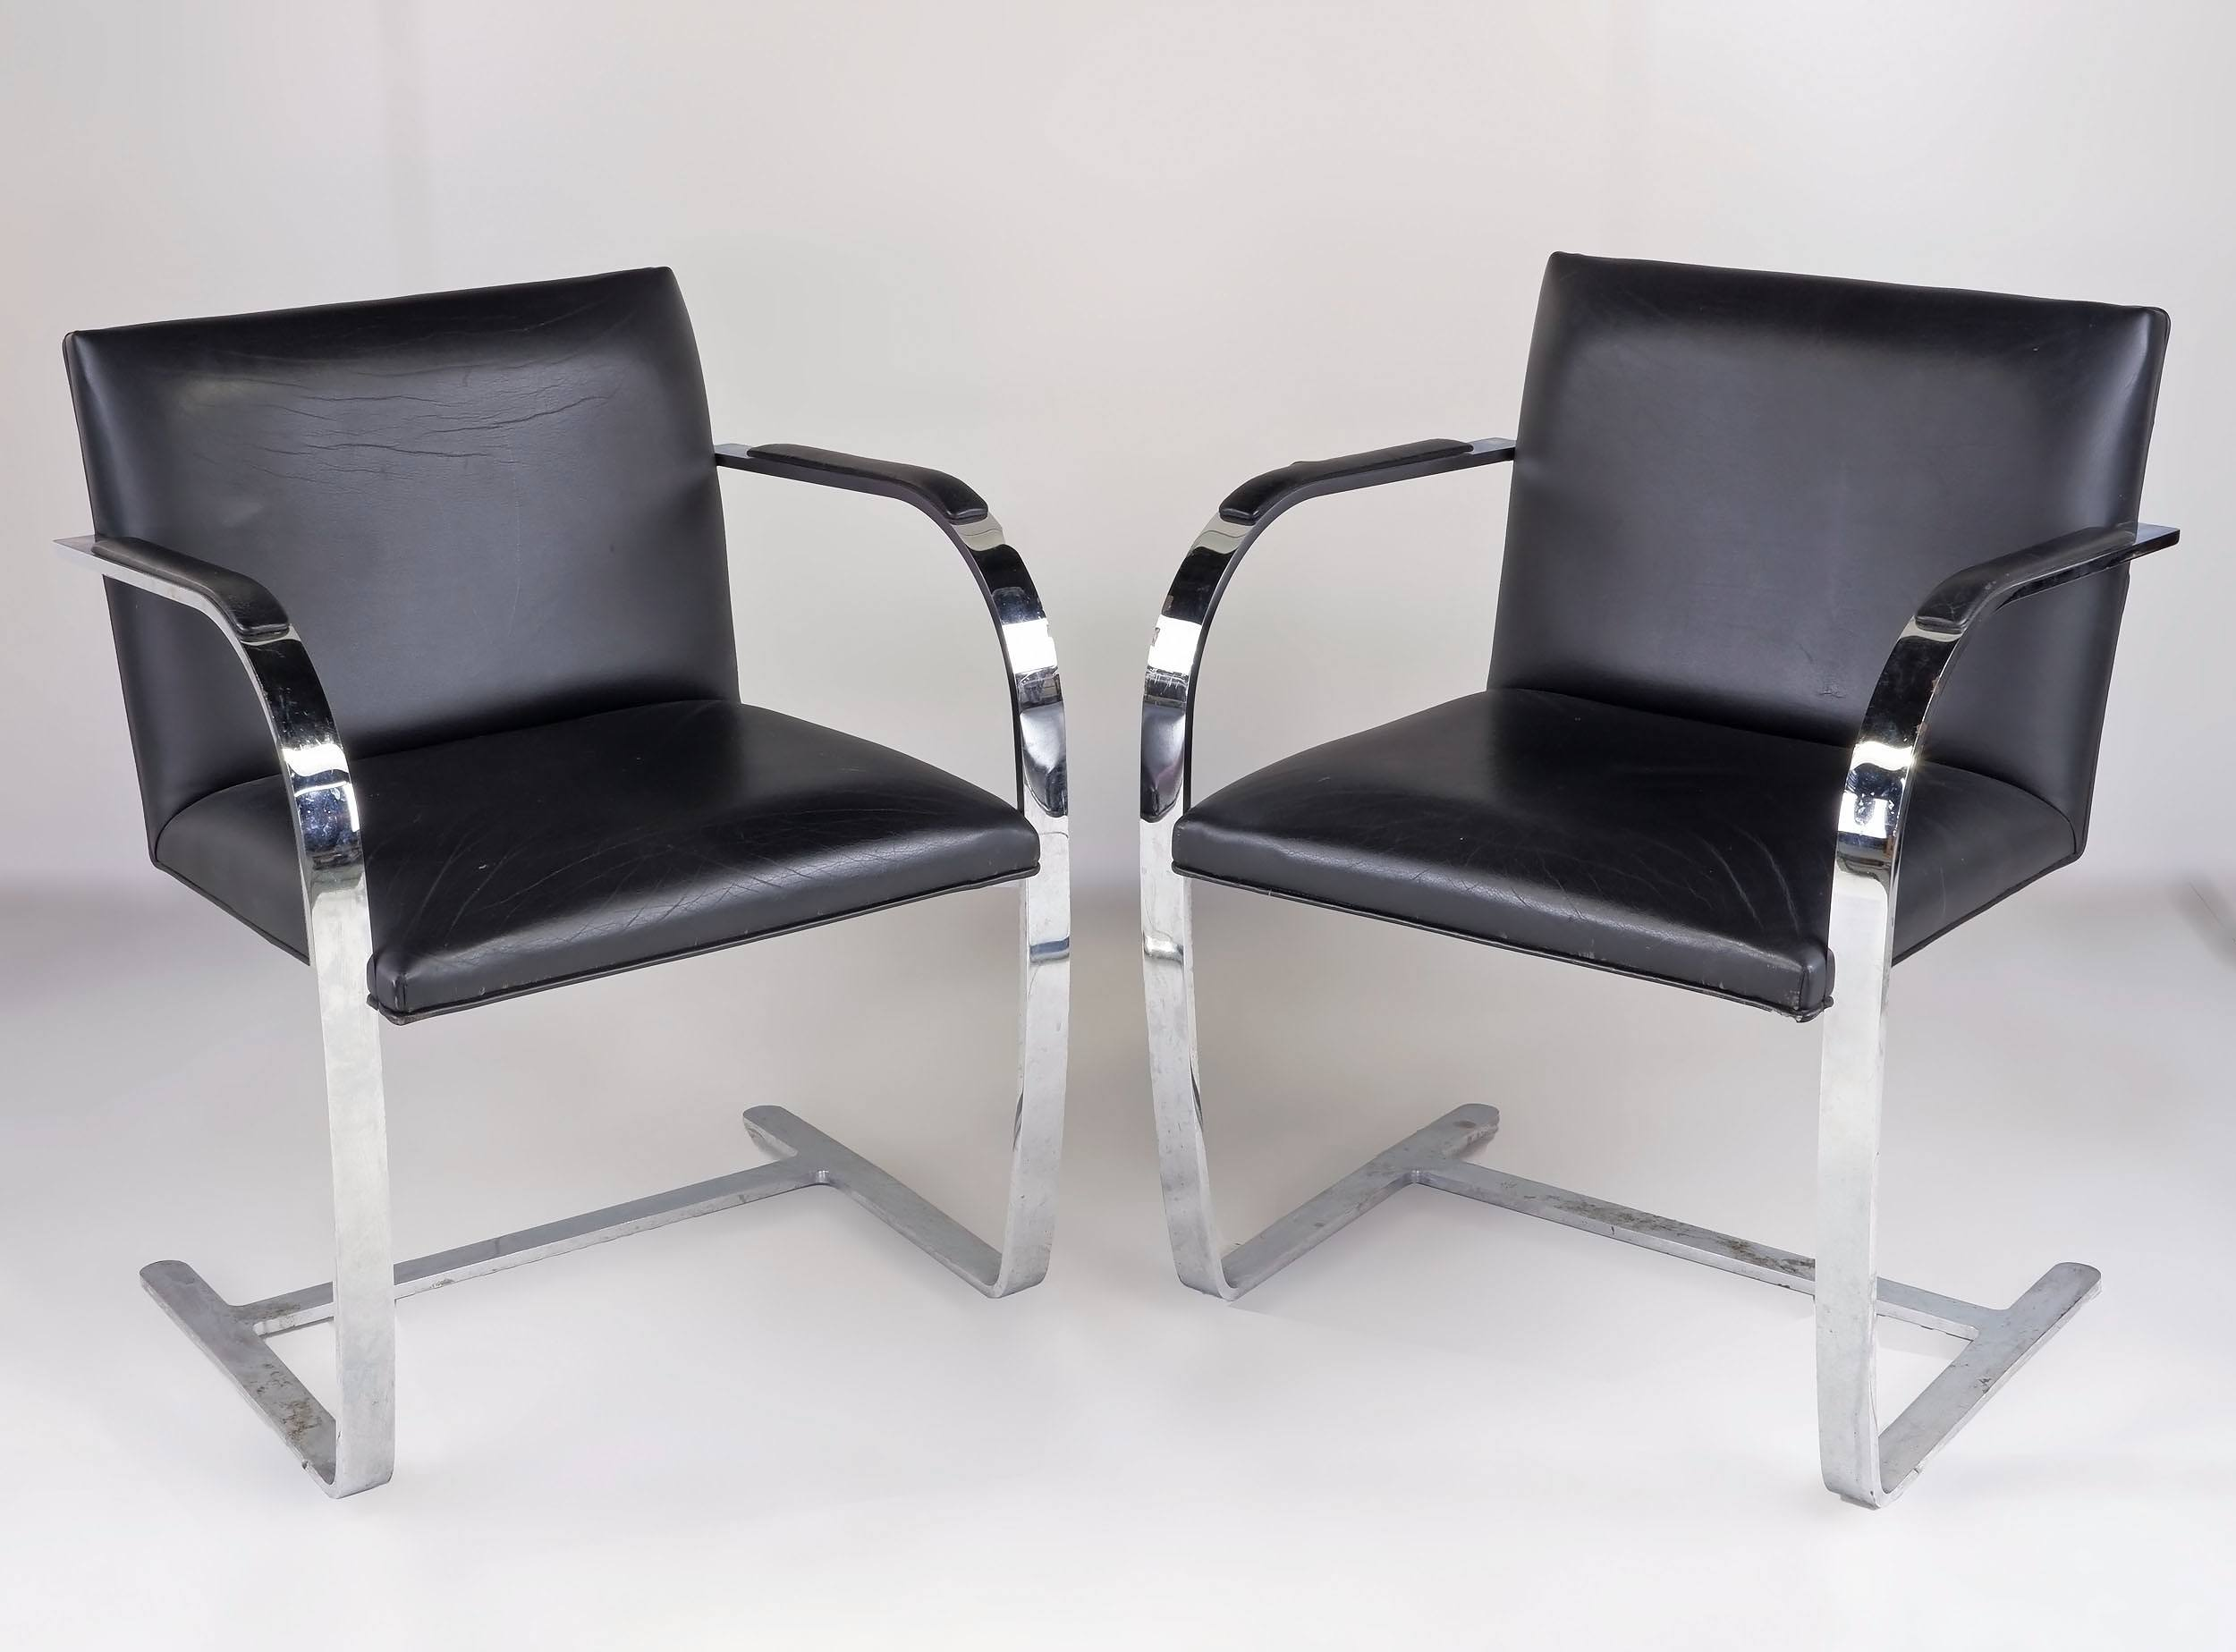 'Pair of Vintage Mies Van Der Rohe Brno Cantilever Armchairs in Chromed Flat Bar Steel and Leather'